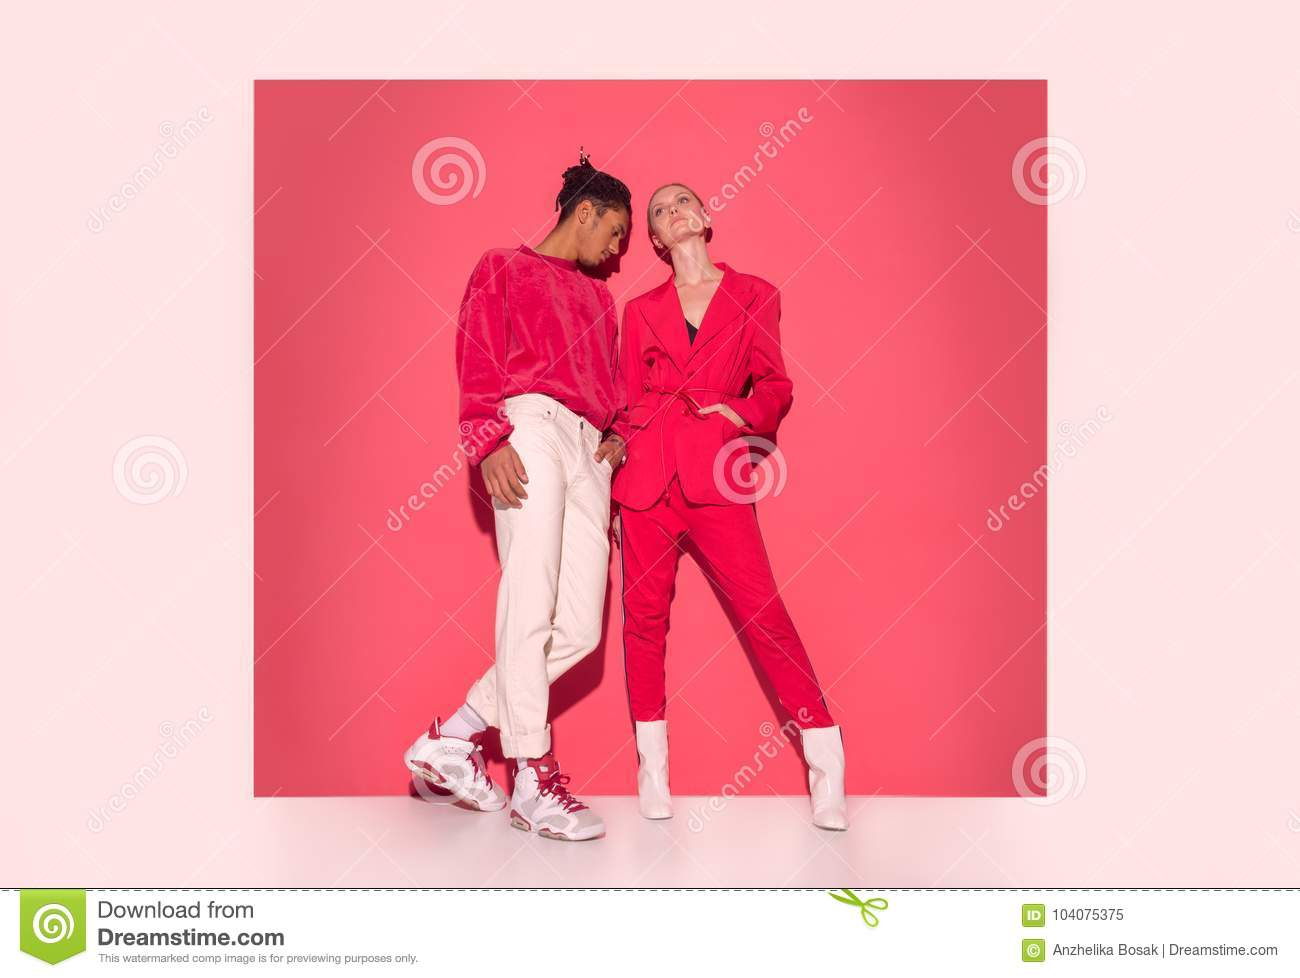 Pop art couple in a red and white